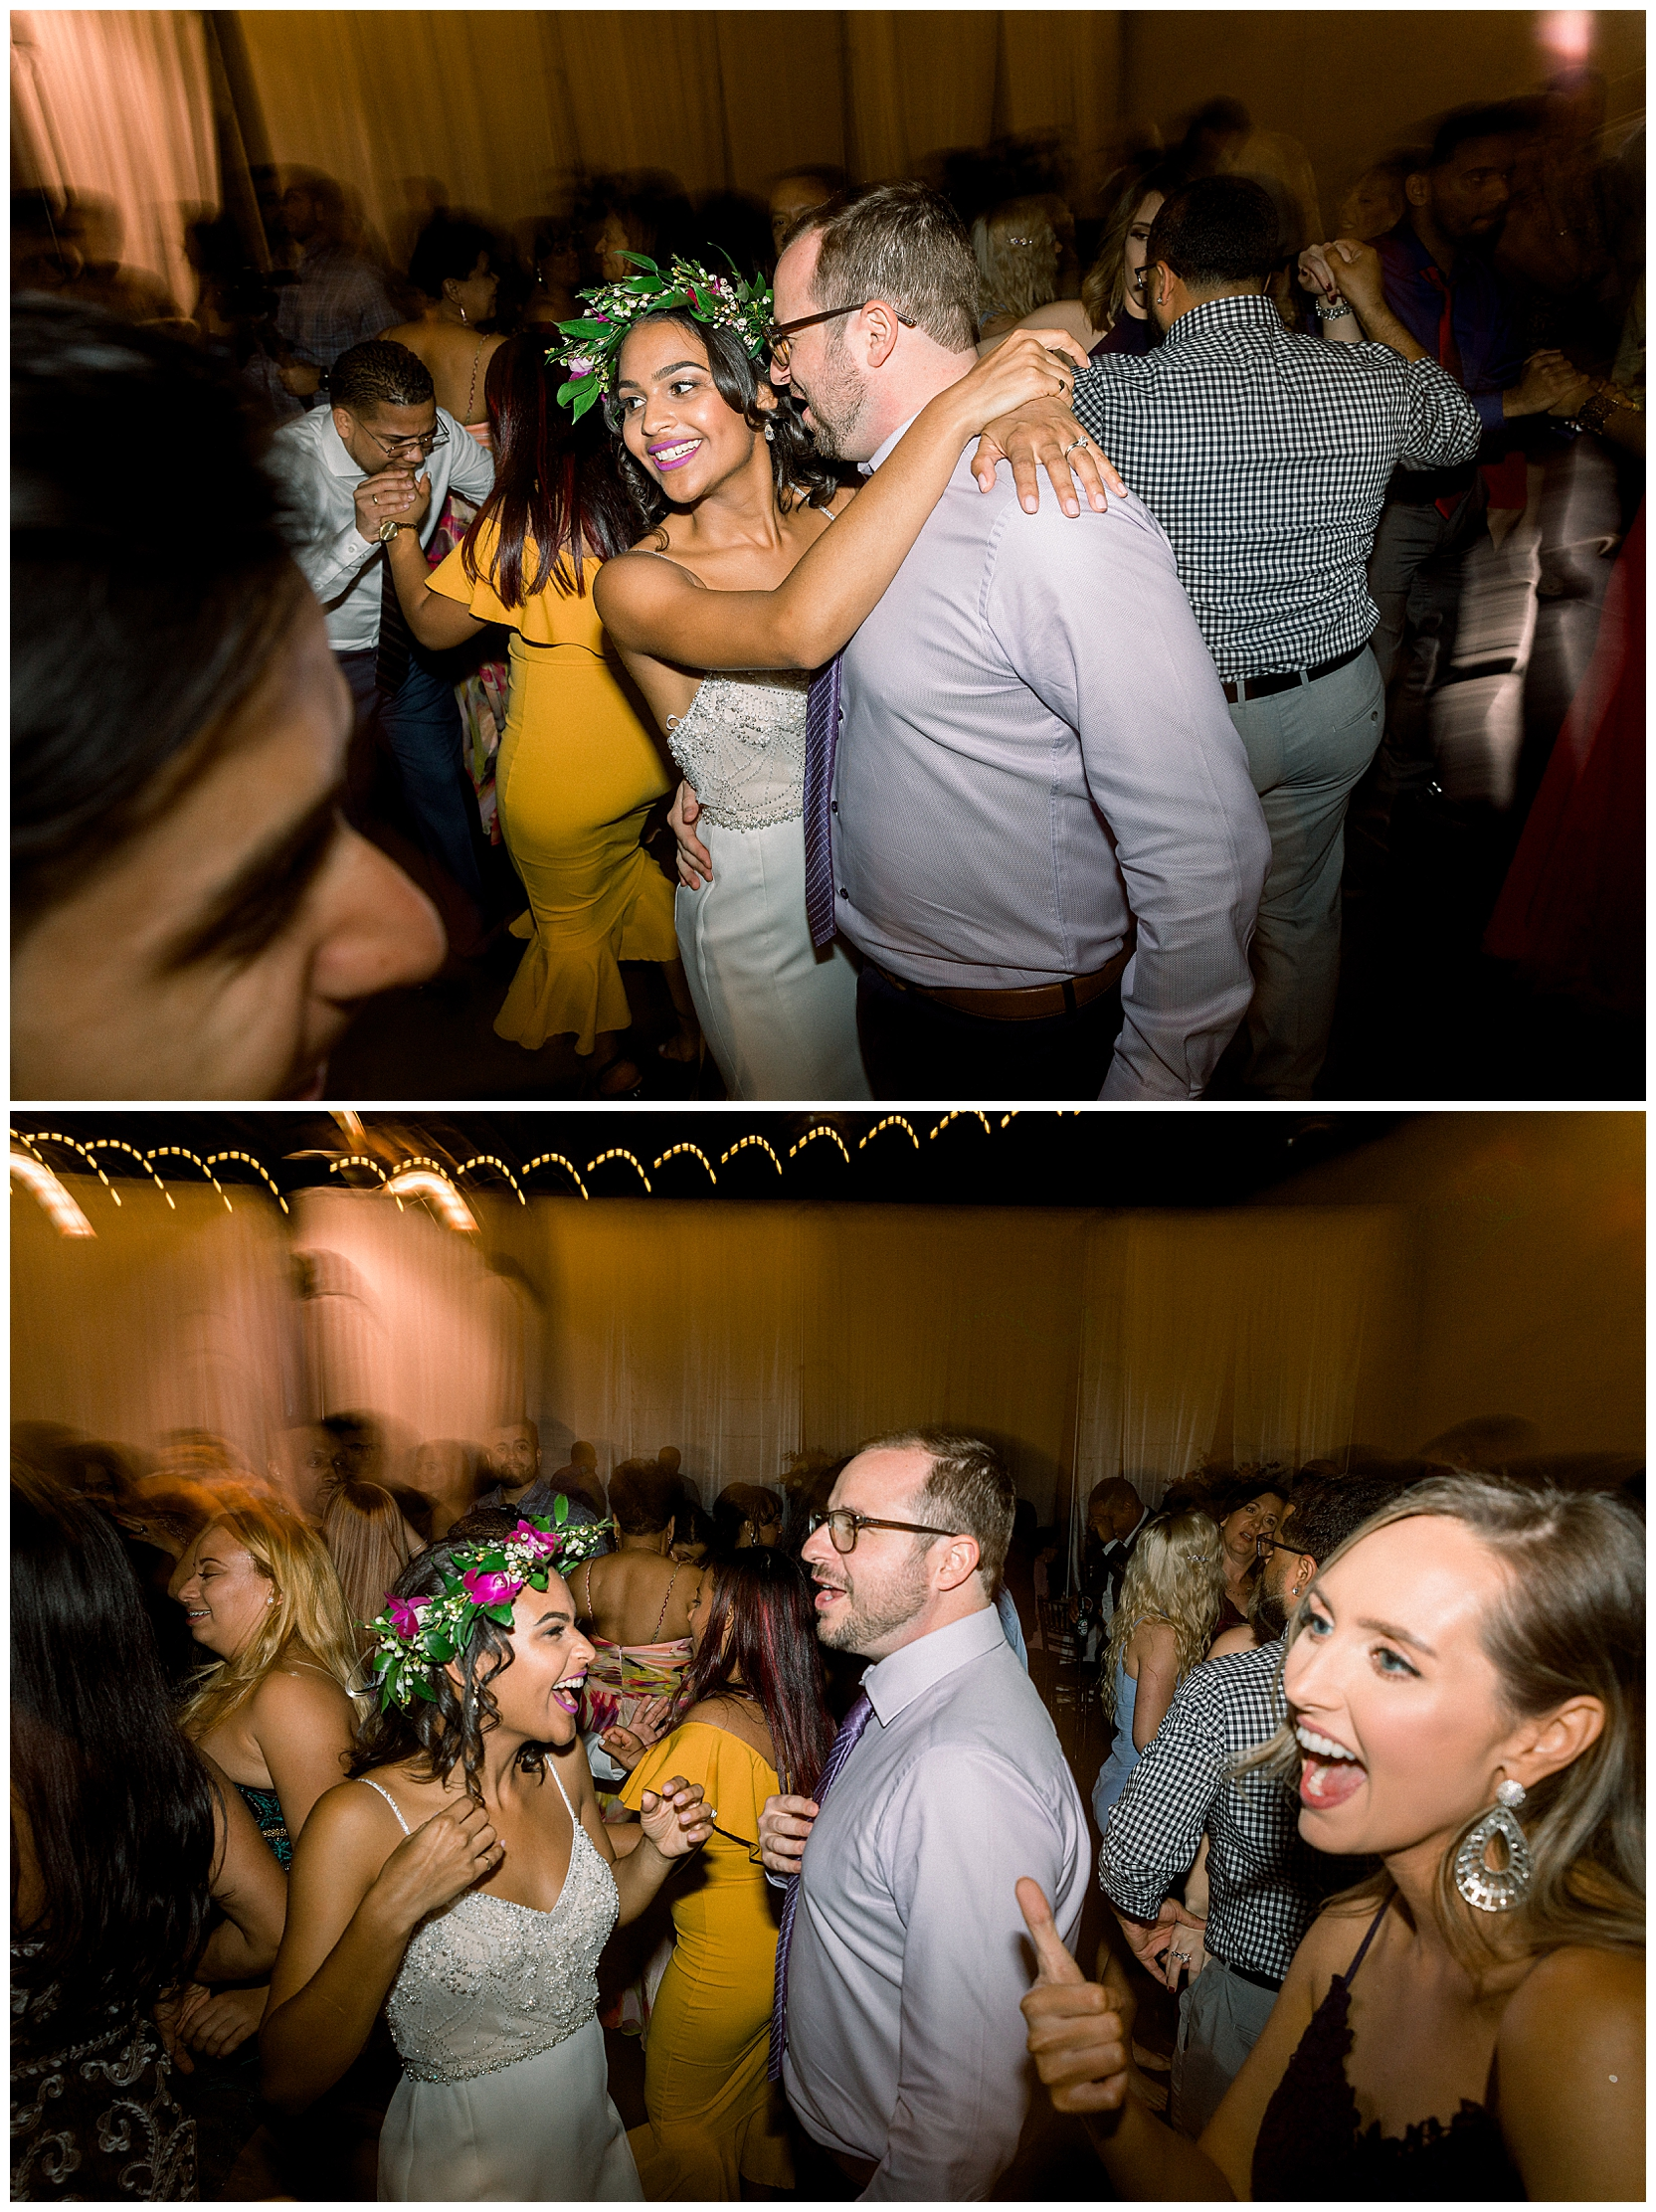 jessicafredericks_lakeland_tampa_wedding_purple_crazy hour_0085.jpg